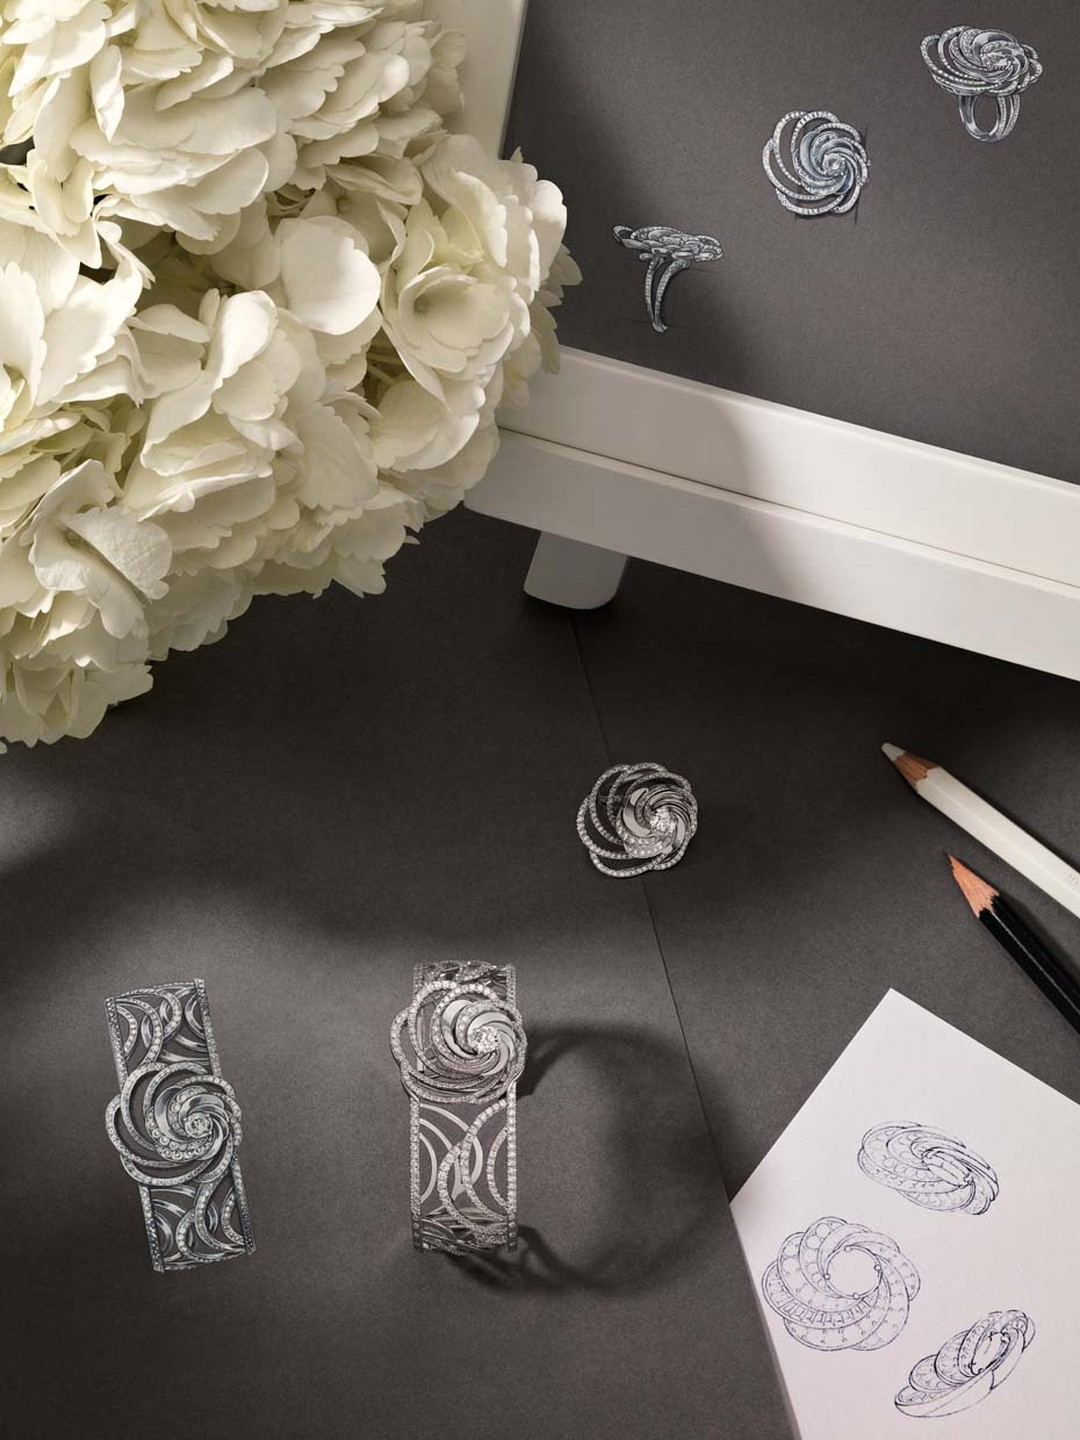 Sketches of De Beers' new Aria jewels alongside a finished bracelet.